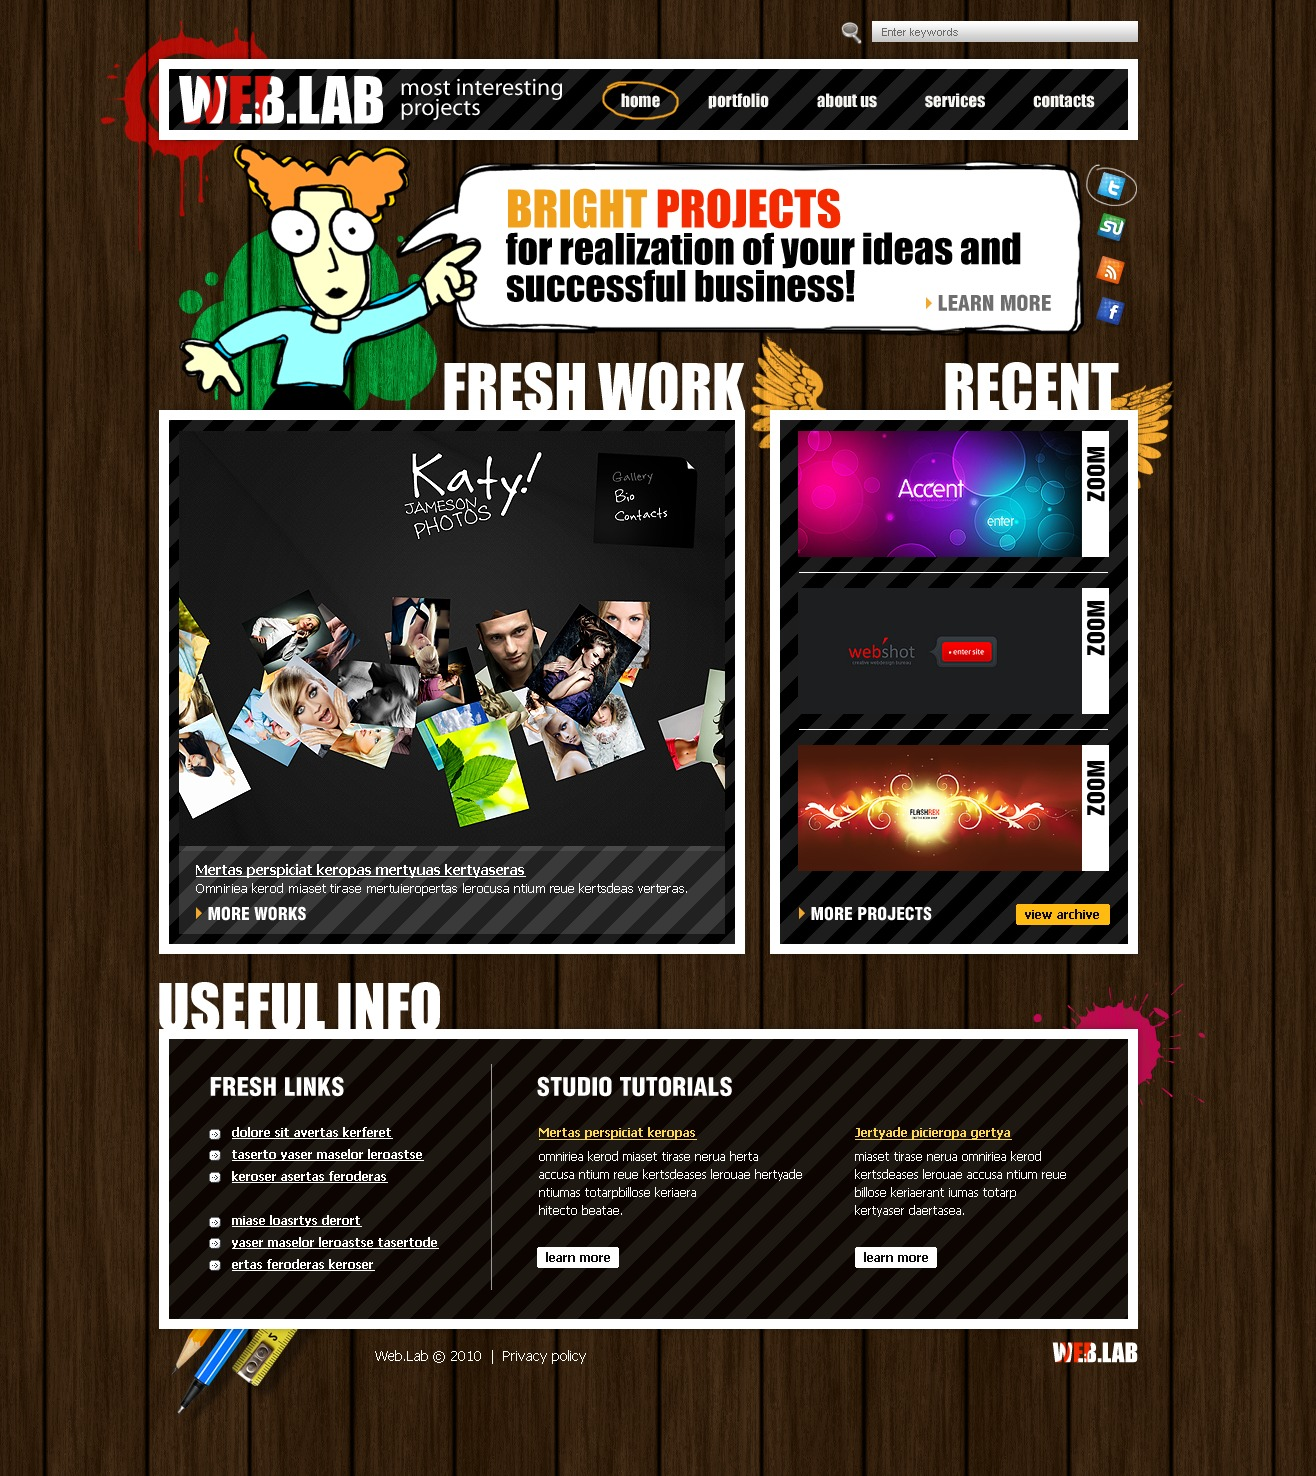 The Web Lab Design Studio PSD Design 54293, one of the best PSD templates of its kind (web design, wide, jquery), also known as web lab design studio PSD template, creative art gallery PSD template, artists PSD template, painting PSD template, painters PSD template, web development PSD template, webmasters PSD template, designers PSD template, internet PSD template, www PSD template, sites PSD template, web design PSD template, webpage PSD template, personal portfolio and related with web lab design studio, creative art gallery, artists, painting, painters, web development, webmasters, designers, internet, www, sites, web design, webpage, personal portfolio, etc.